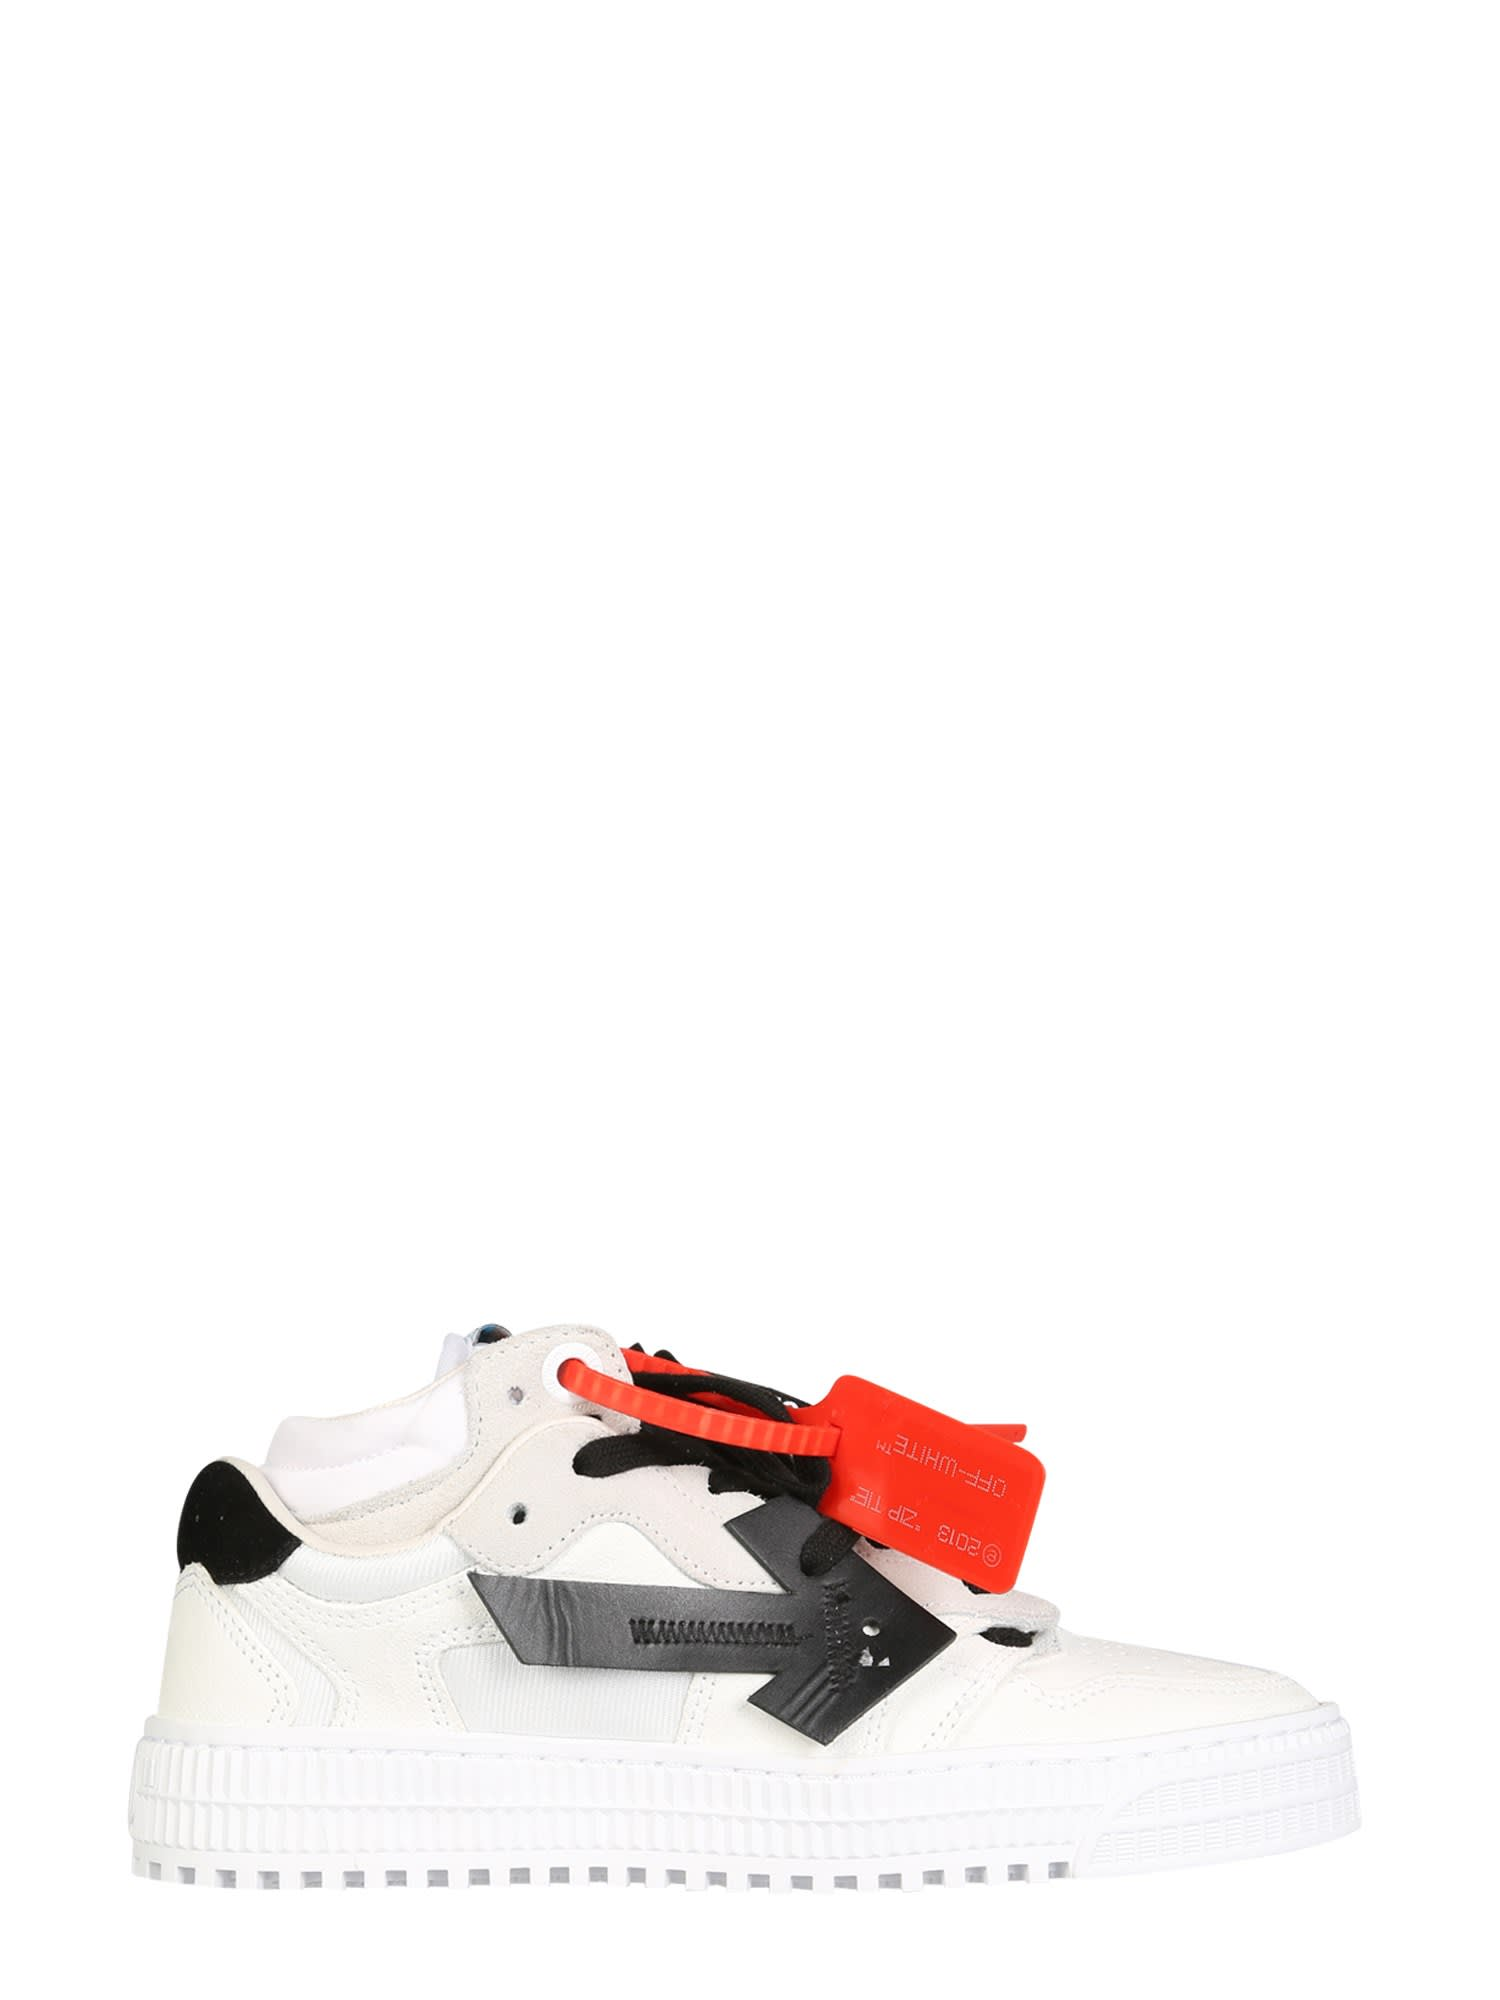 Off-White 3.0 SNEAKERS